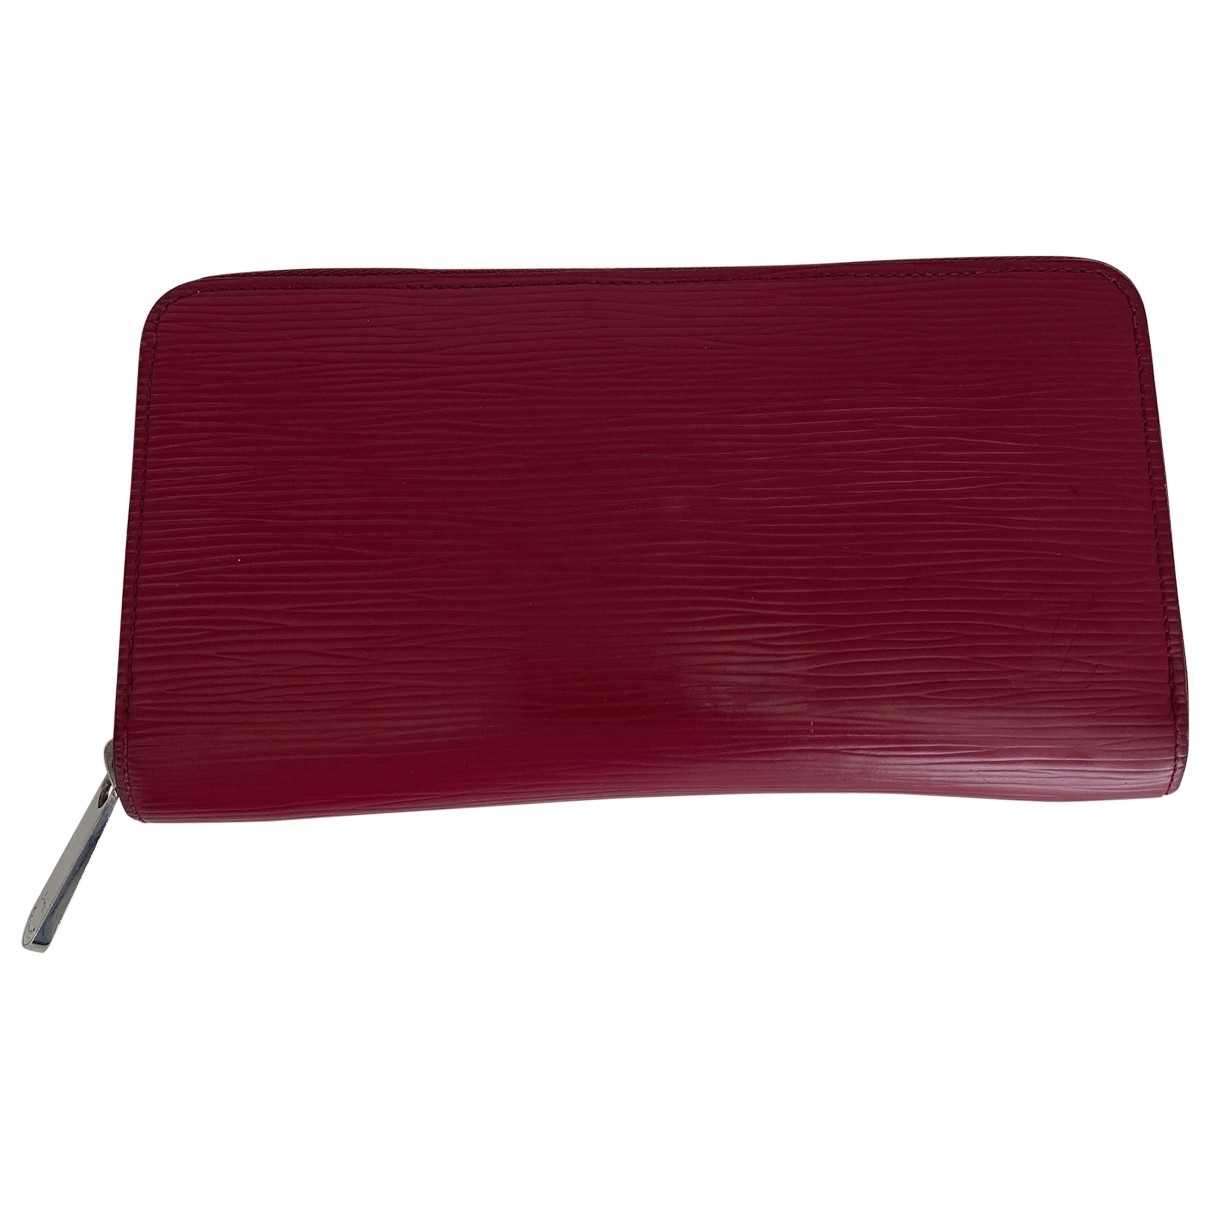 Louis Vuitton Zippy Burgundy Leather wallet for Women \N